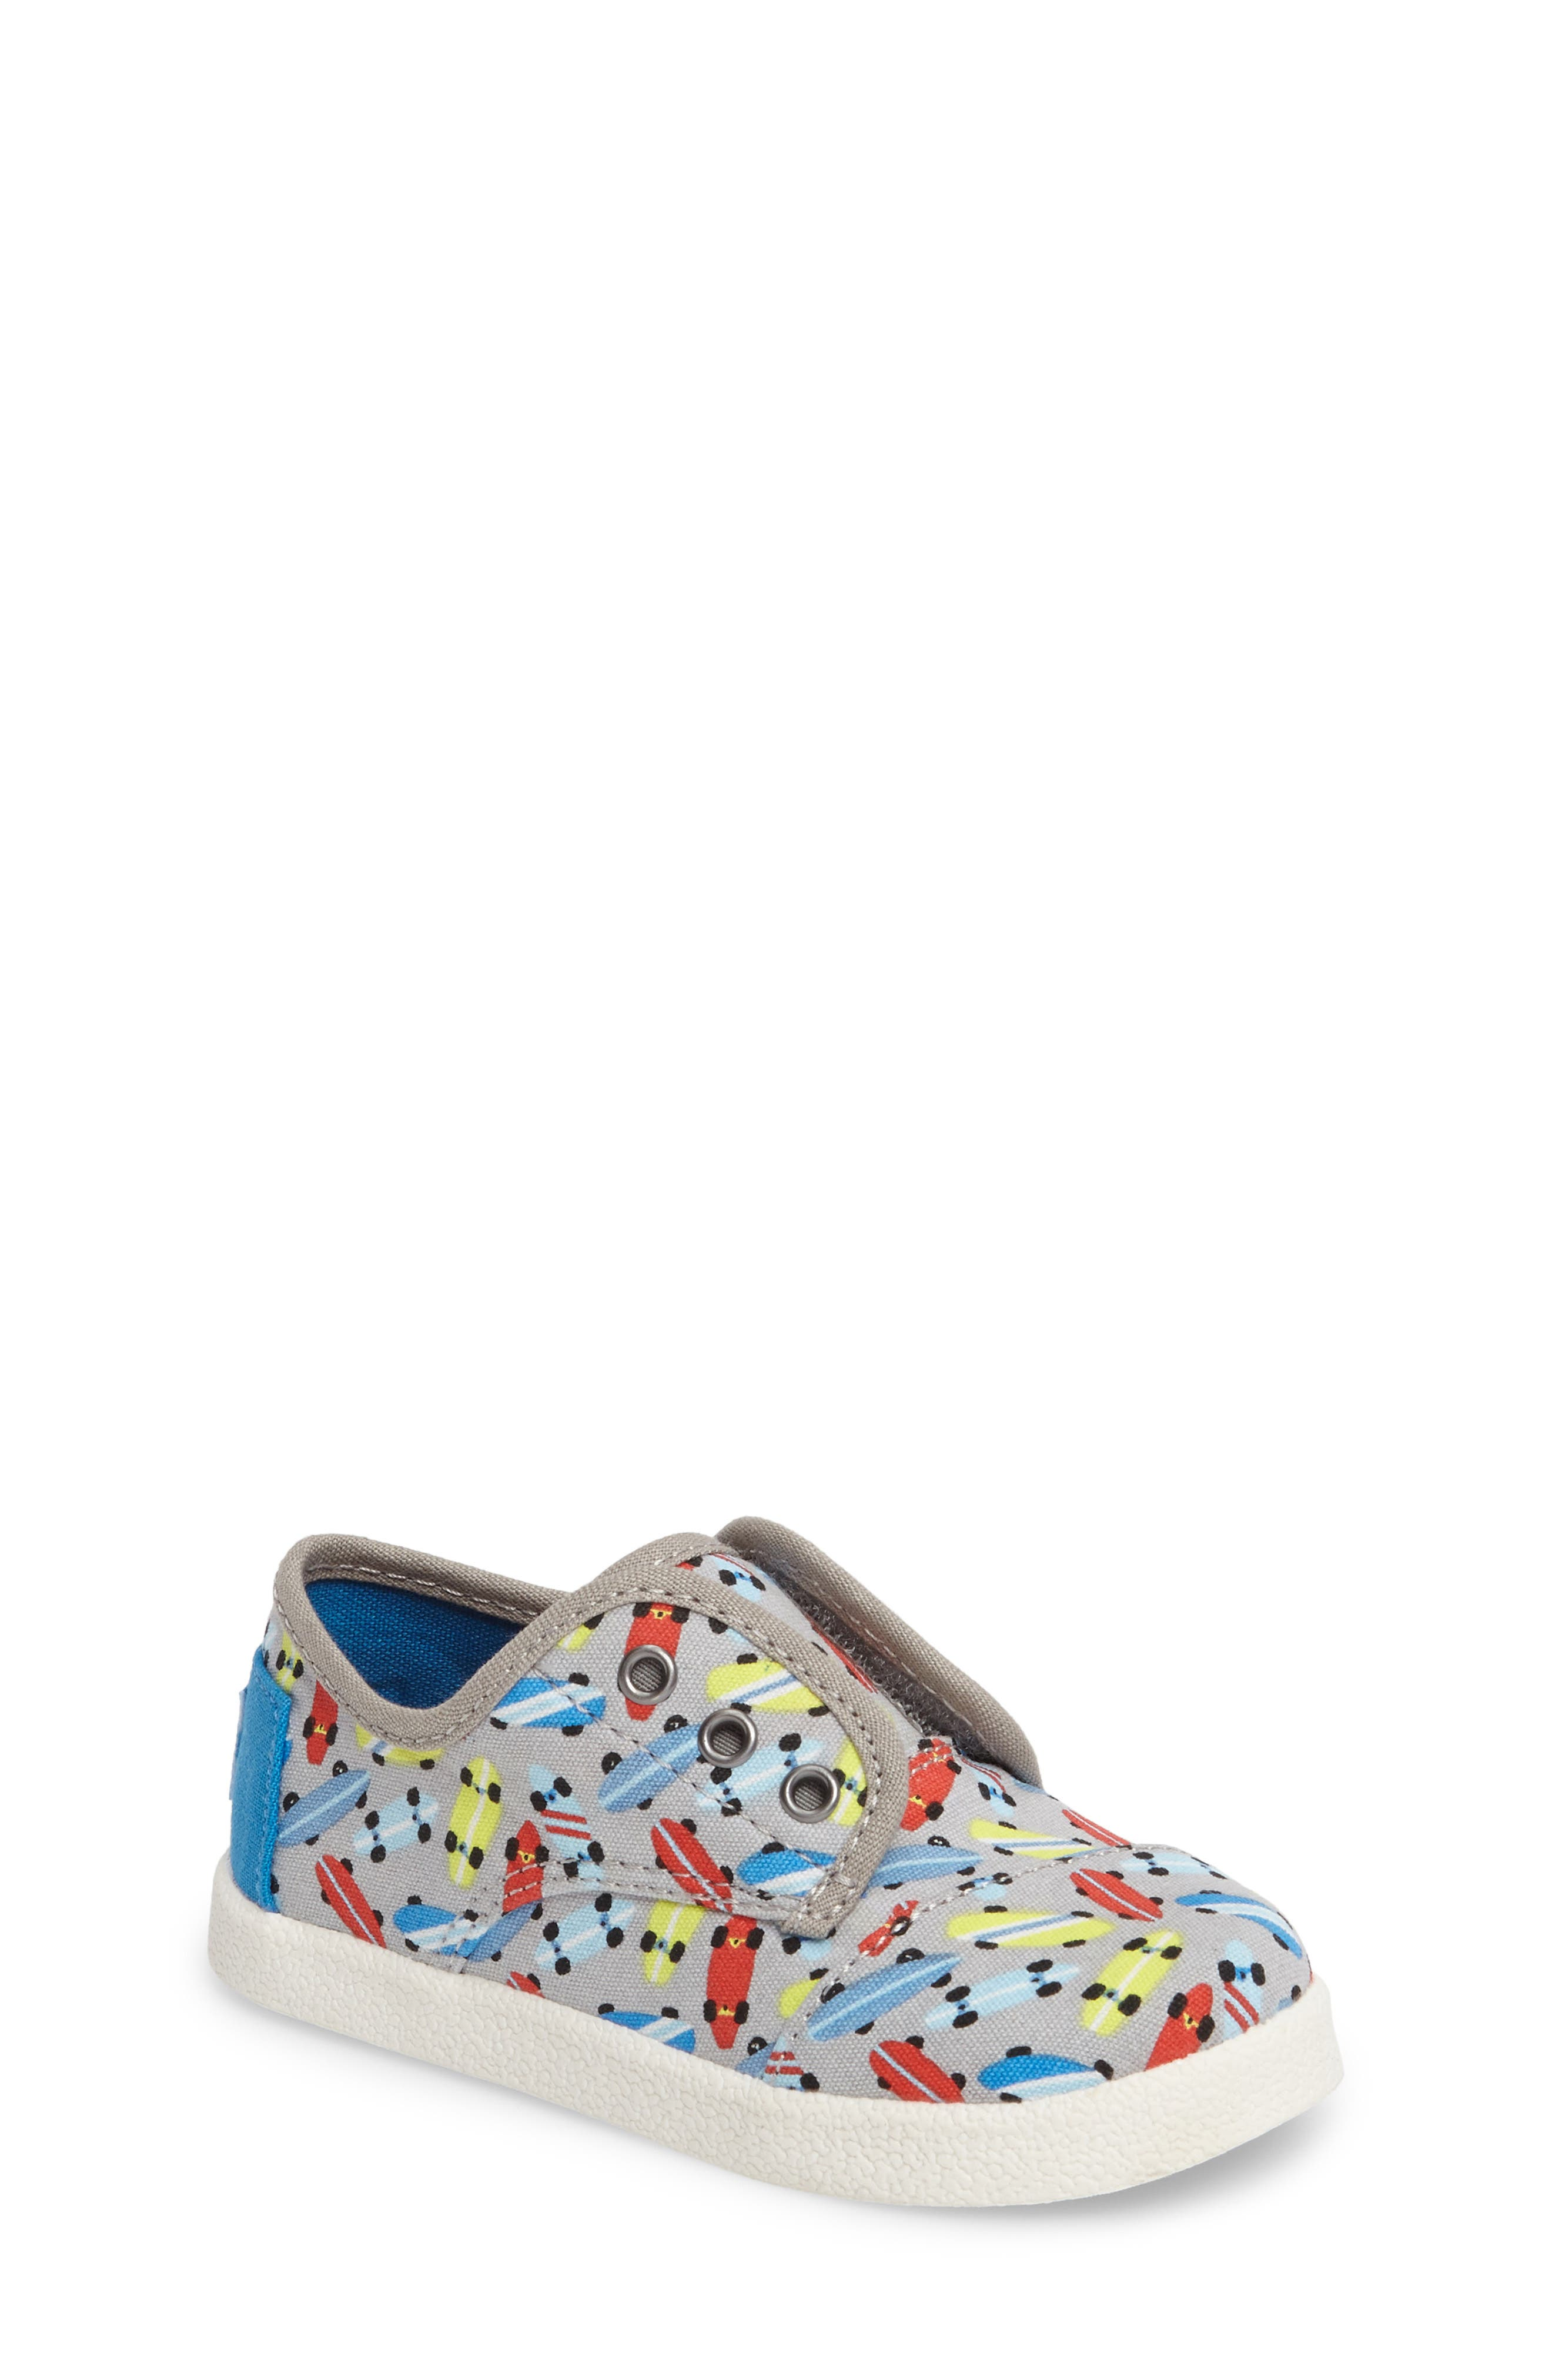 TOMS Paseo Sneaker (Baby, Walker & Toddler)